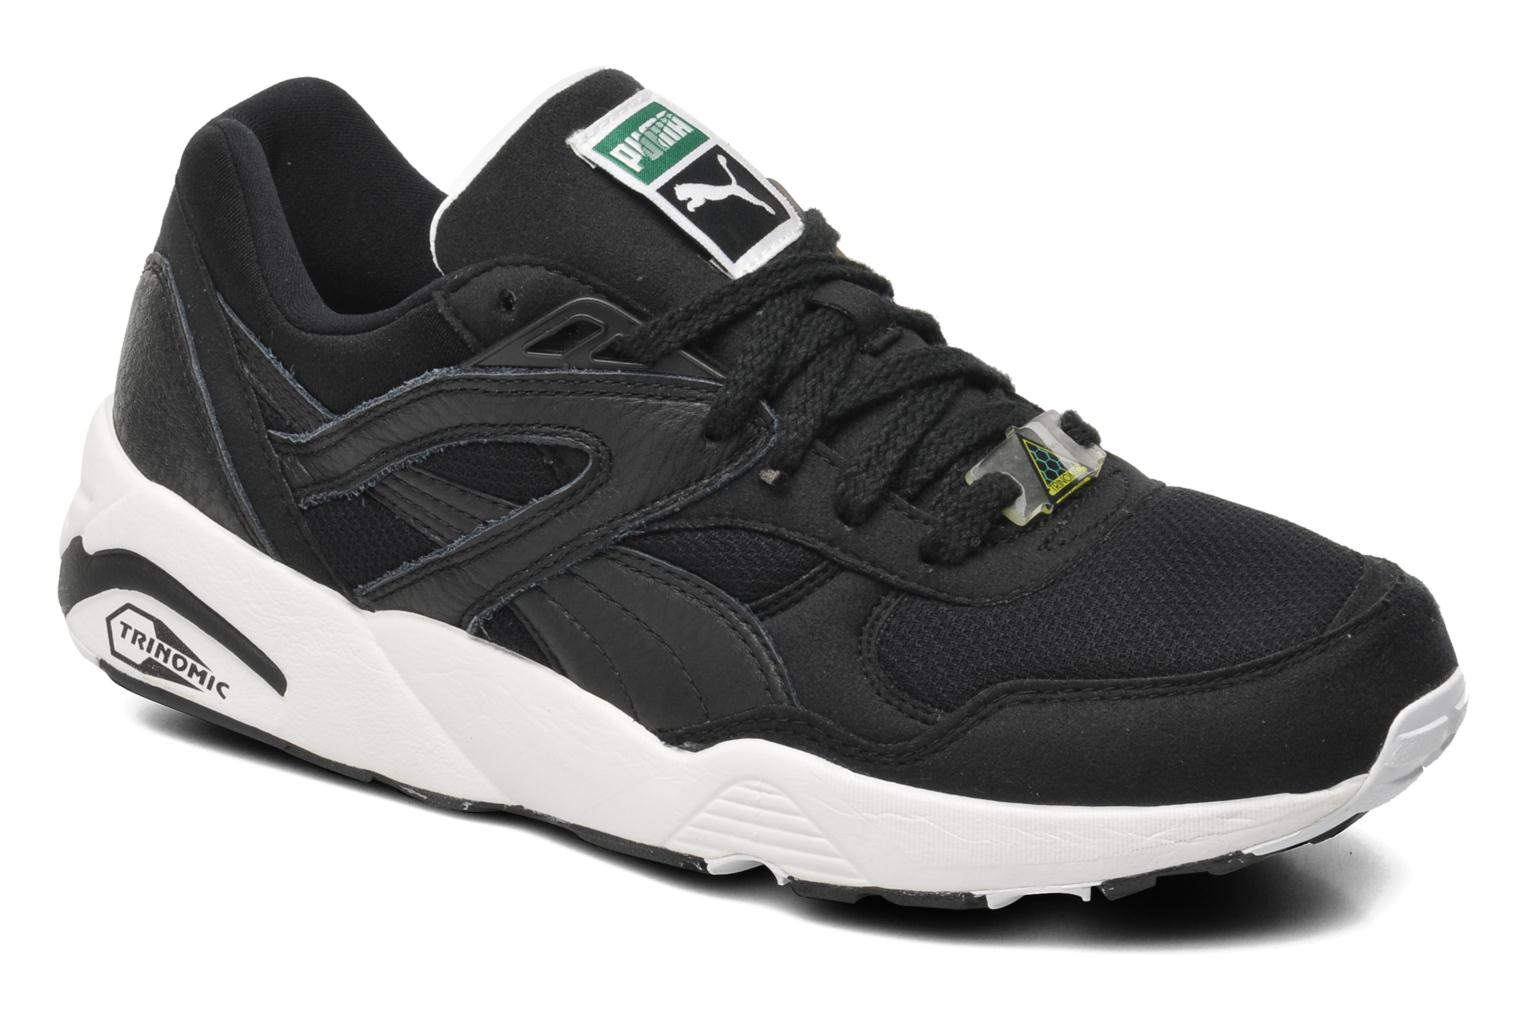 Puma Trinomic R698 Sport shoes in Black at Sarenza.co.uk (193943)